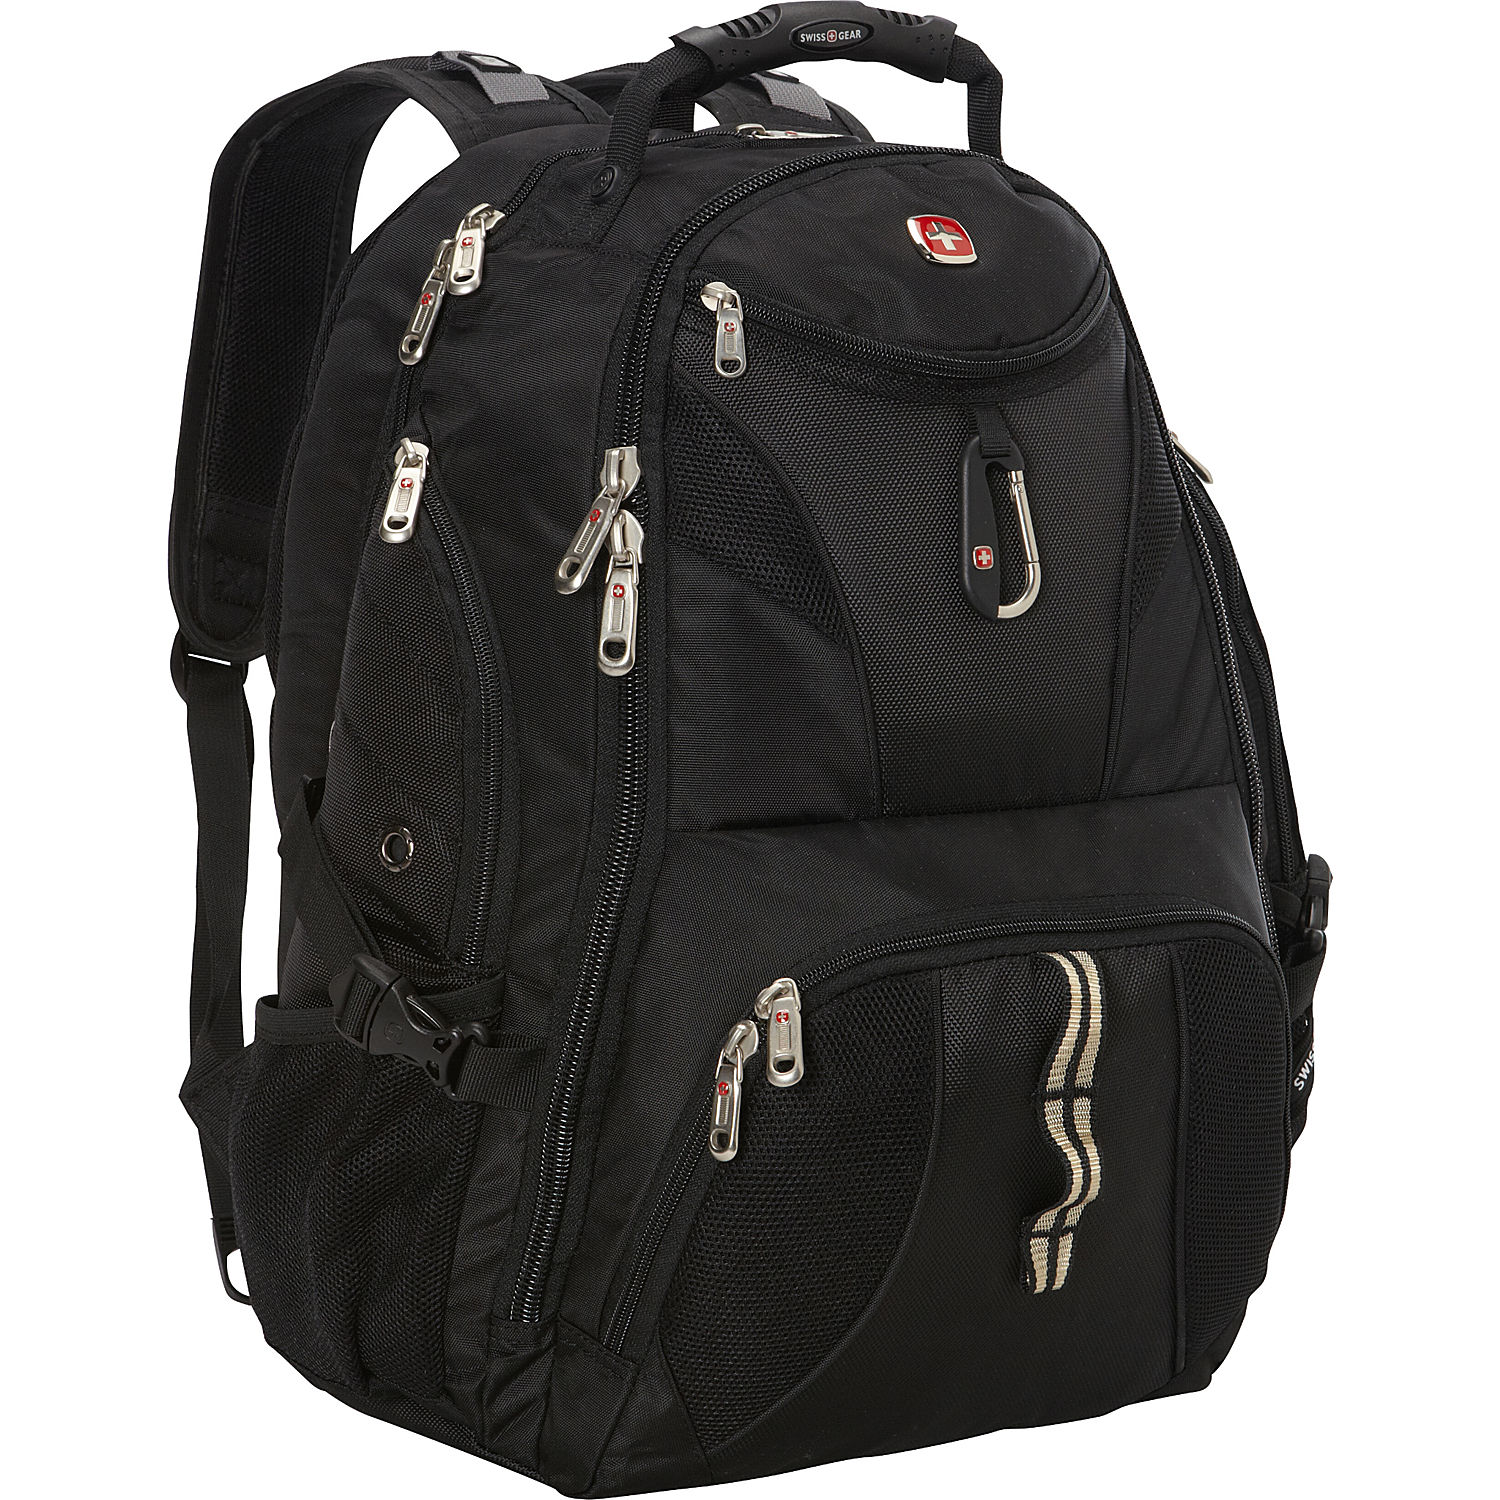 Swissgear travel gear scansmart backpack free shipping for Travel gear brand